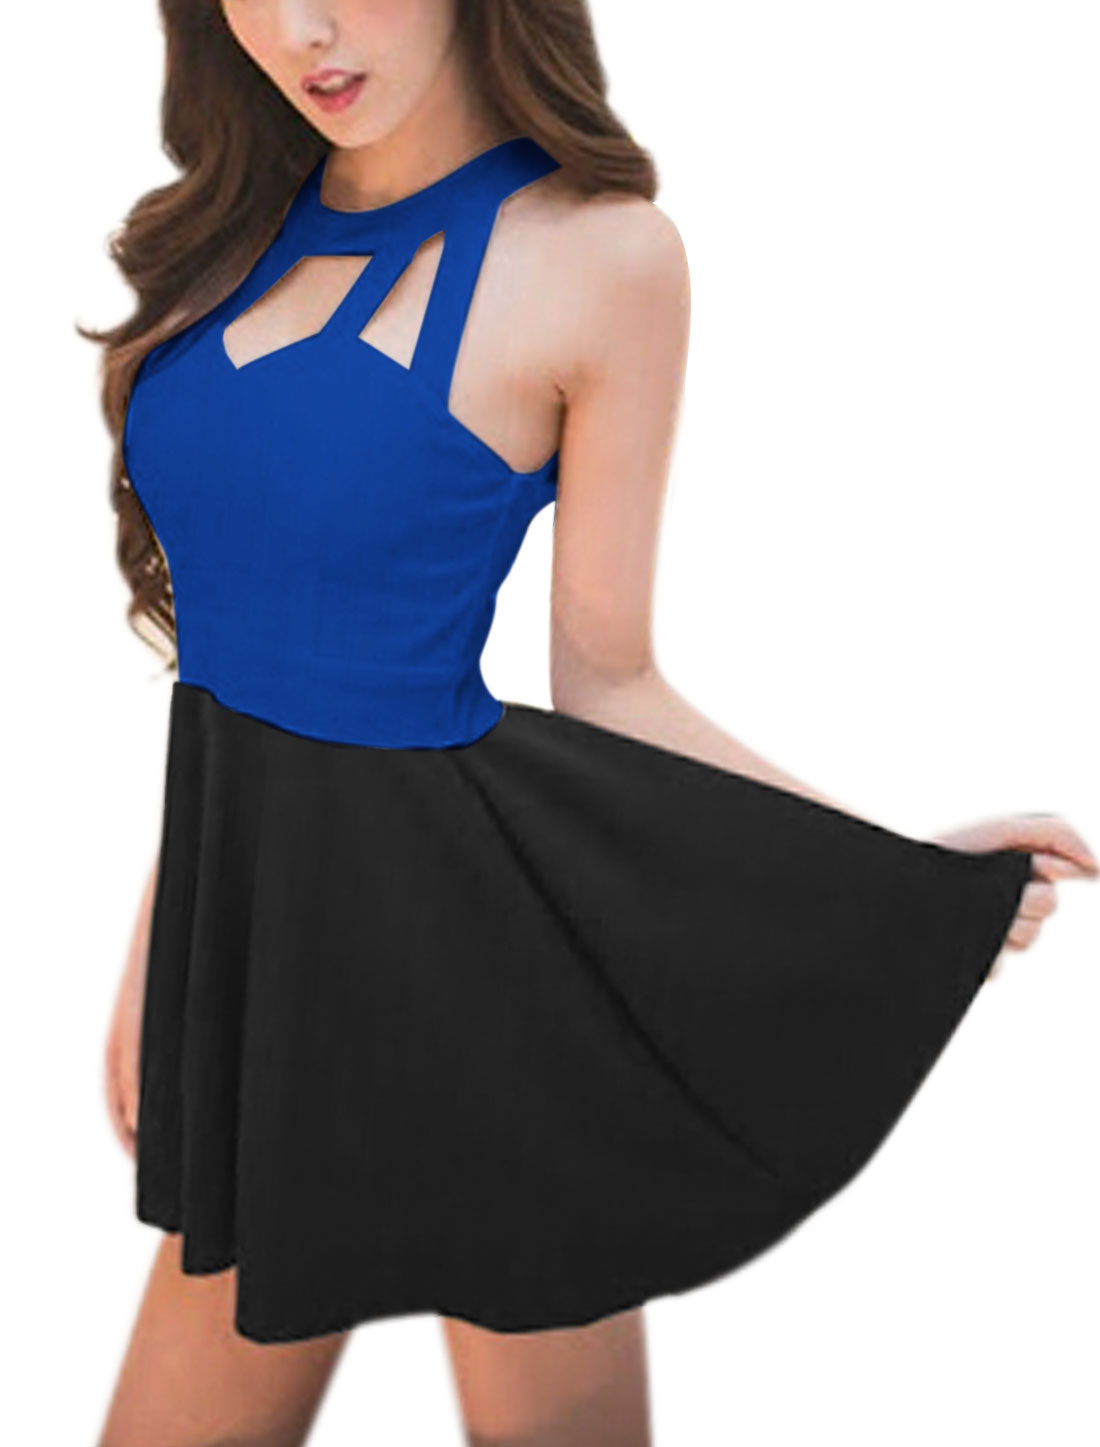 Lady Sleeveless Cut Out Padded Bust Color Block Mini Dress Royal Blue Black XS